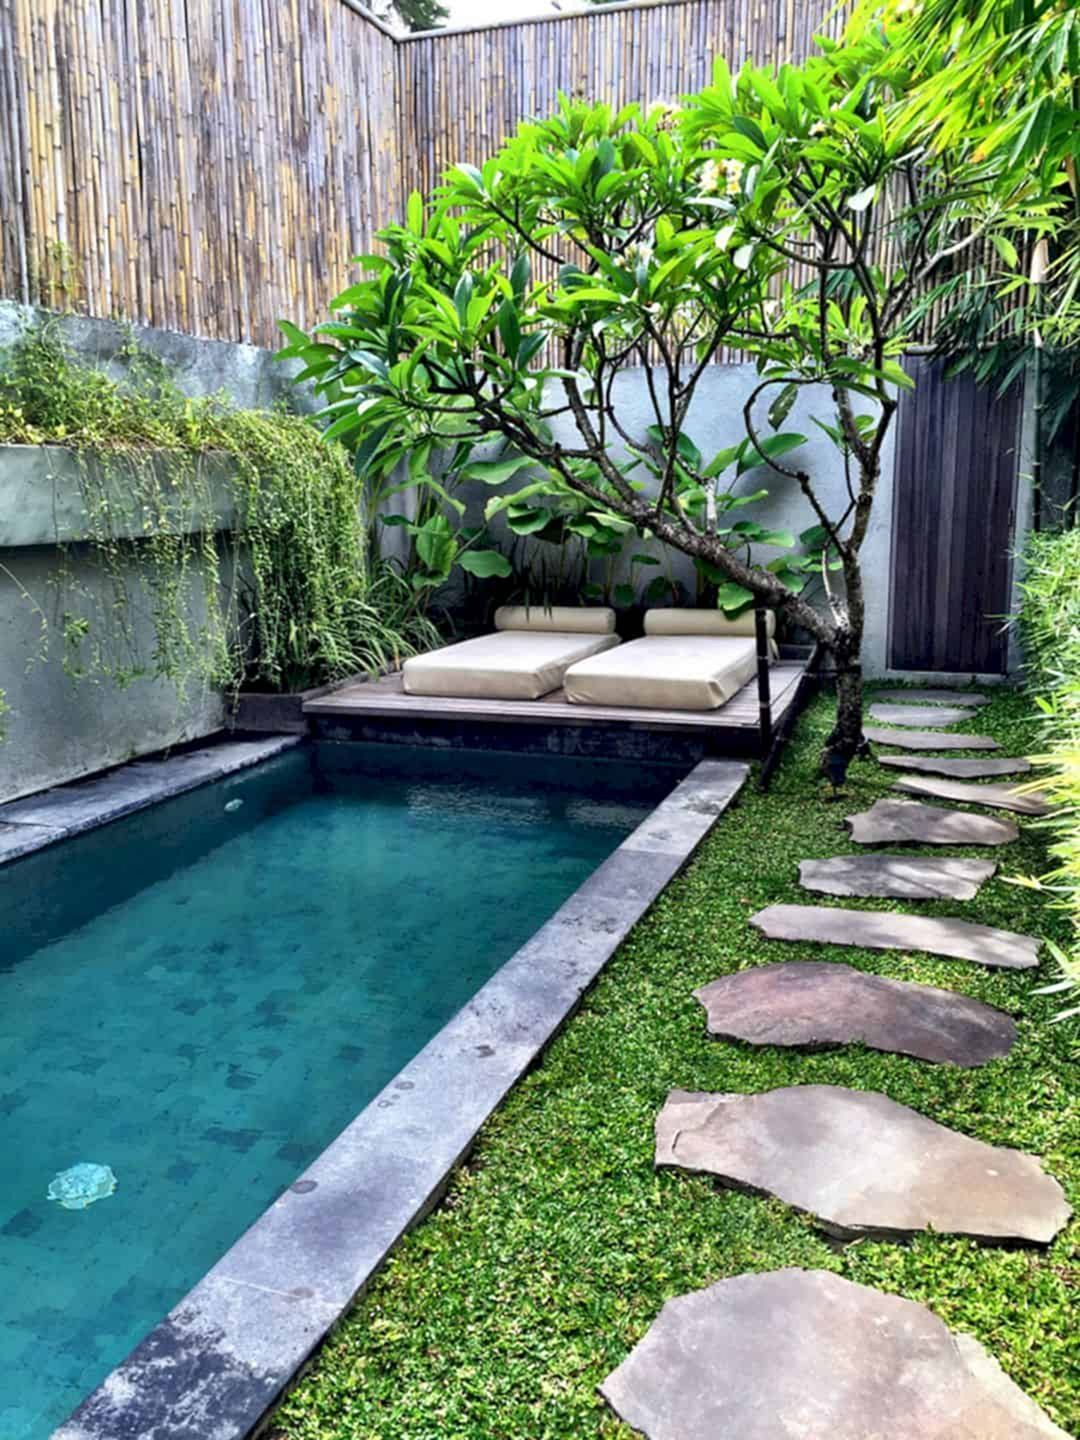 13 Marvelous Small Backyard Designs With Pool